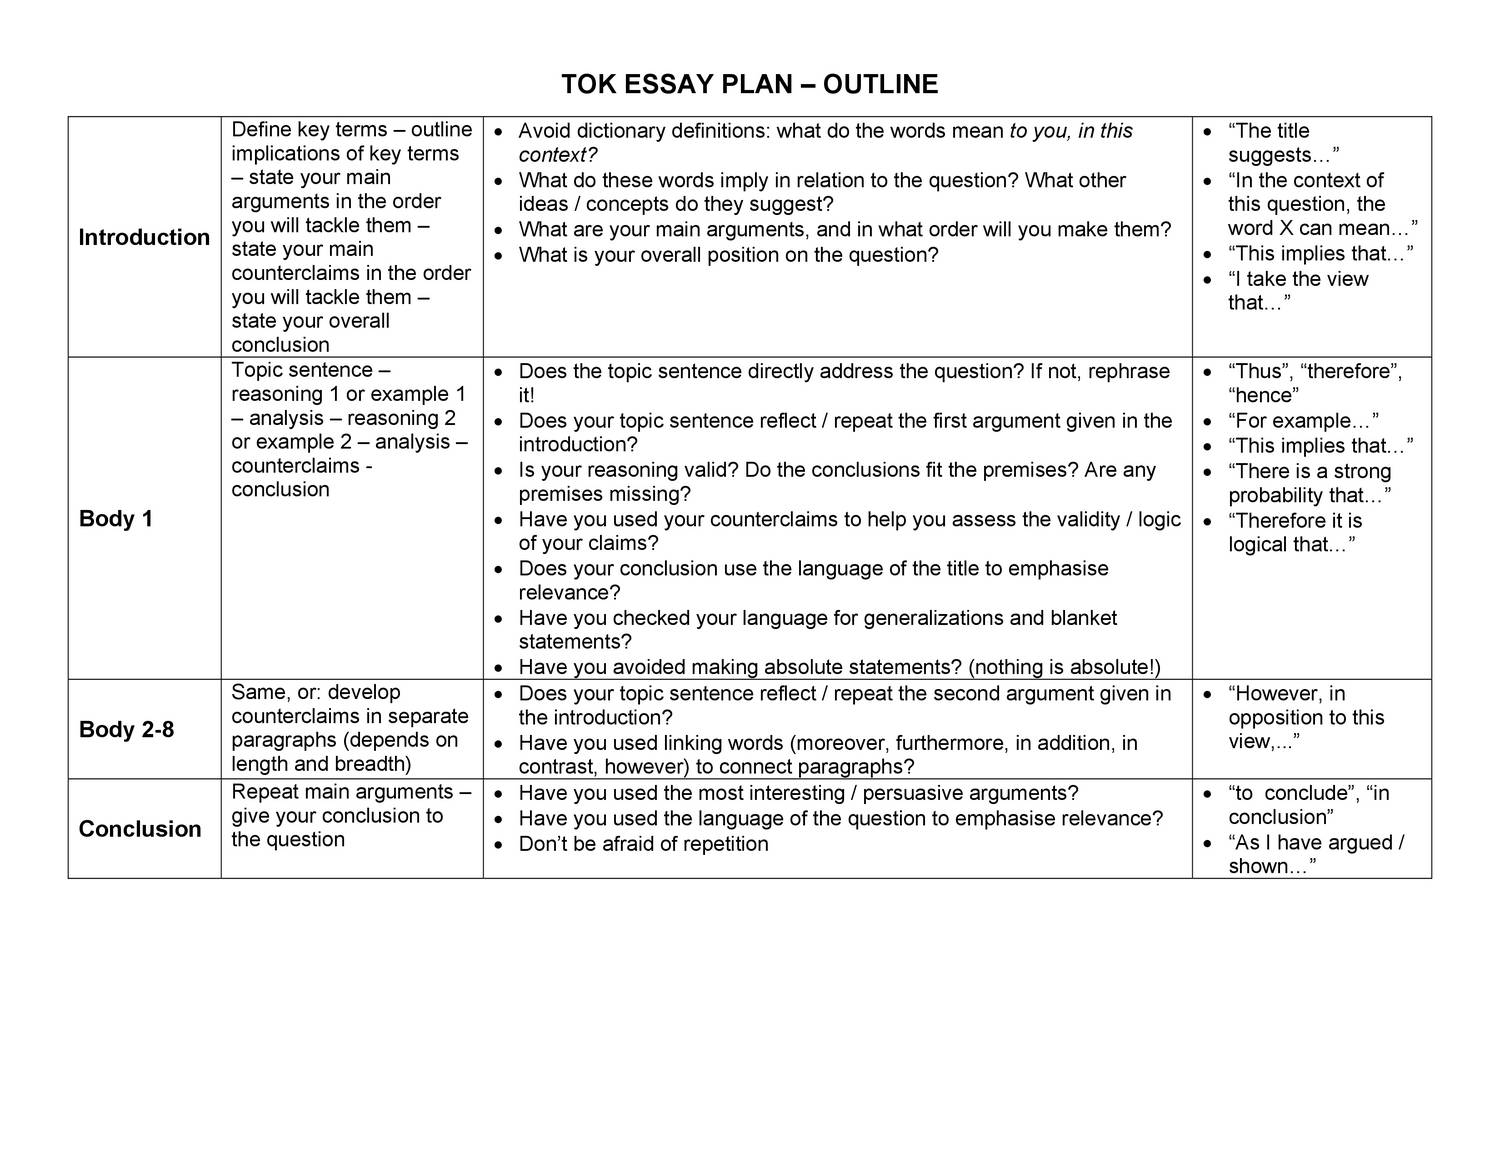 010 Essay Plan Tok Stirring Template Word Planning Sheet Critical Full